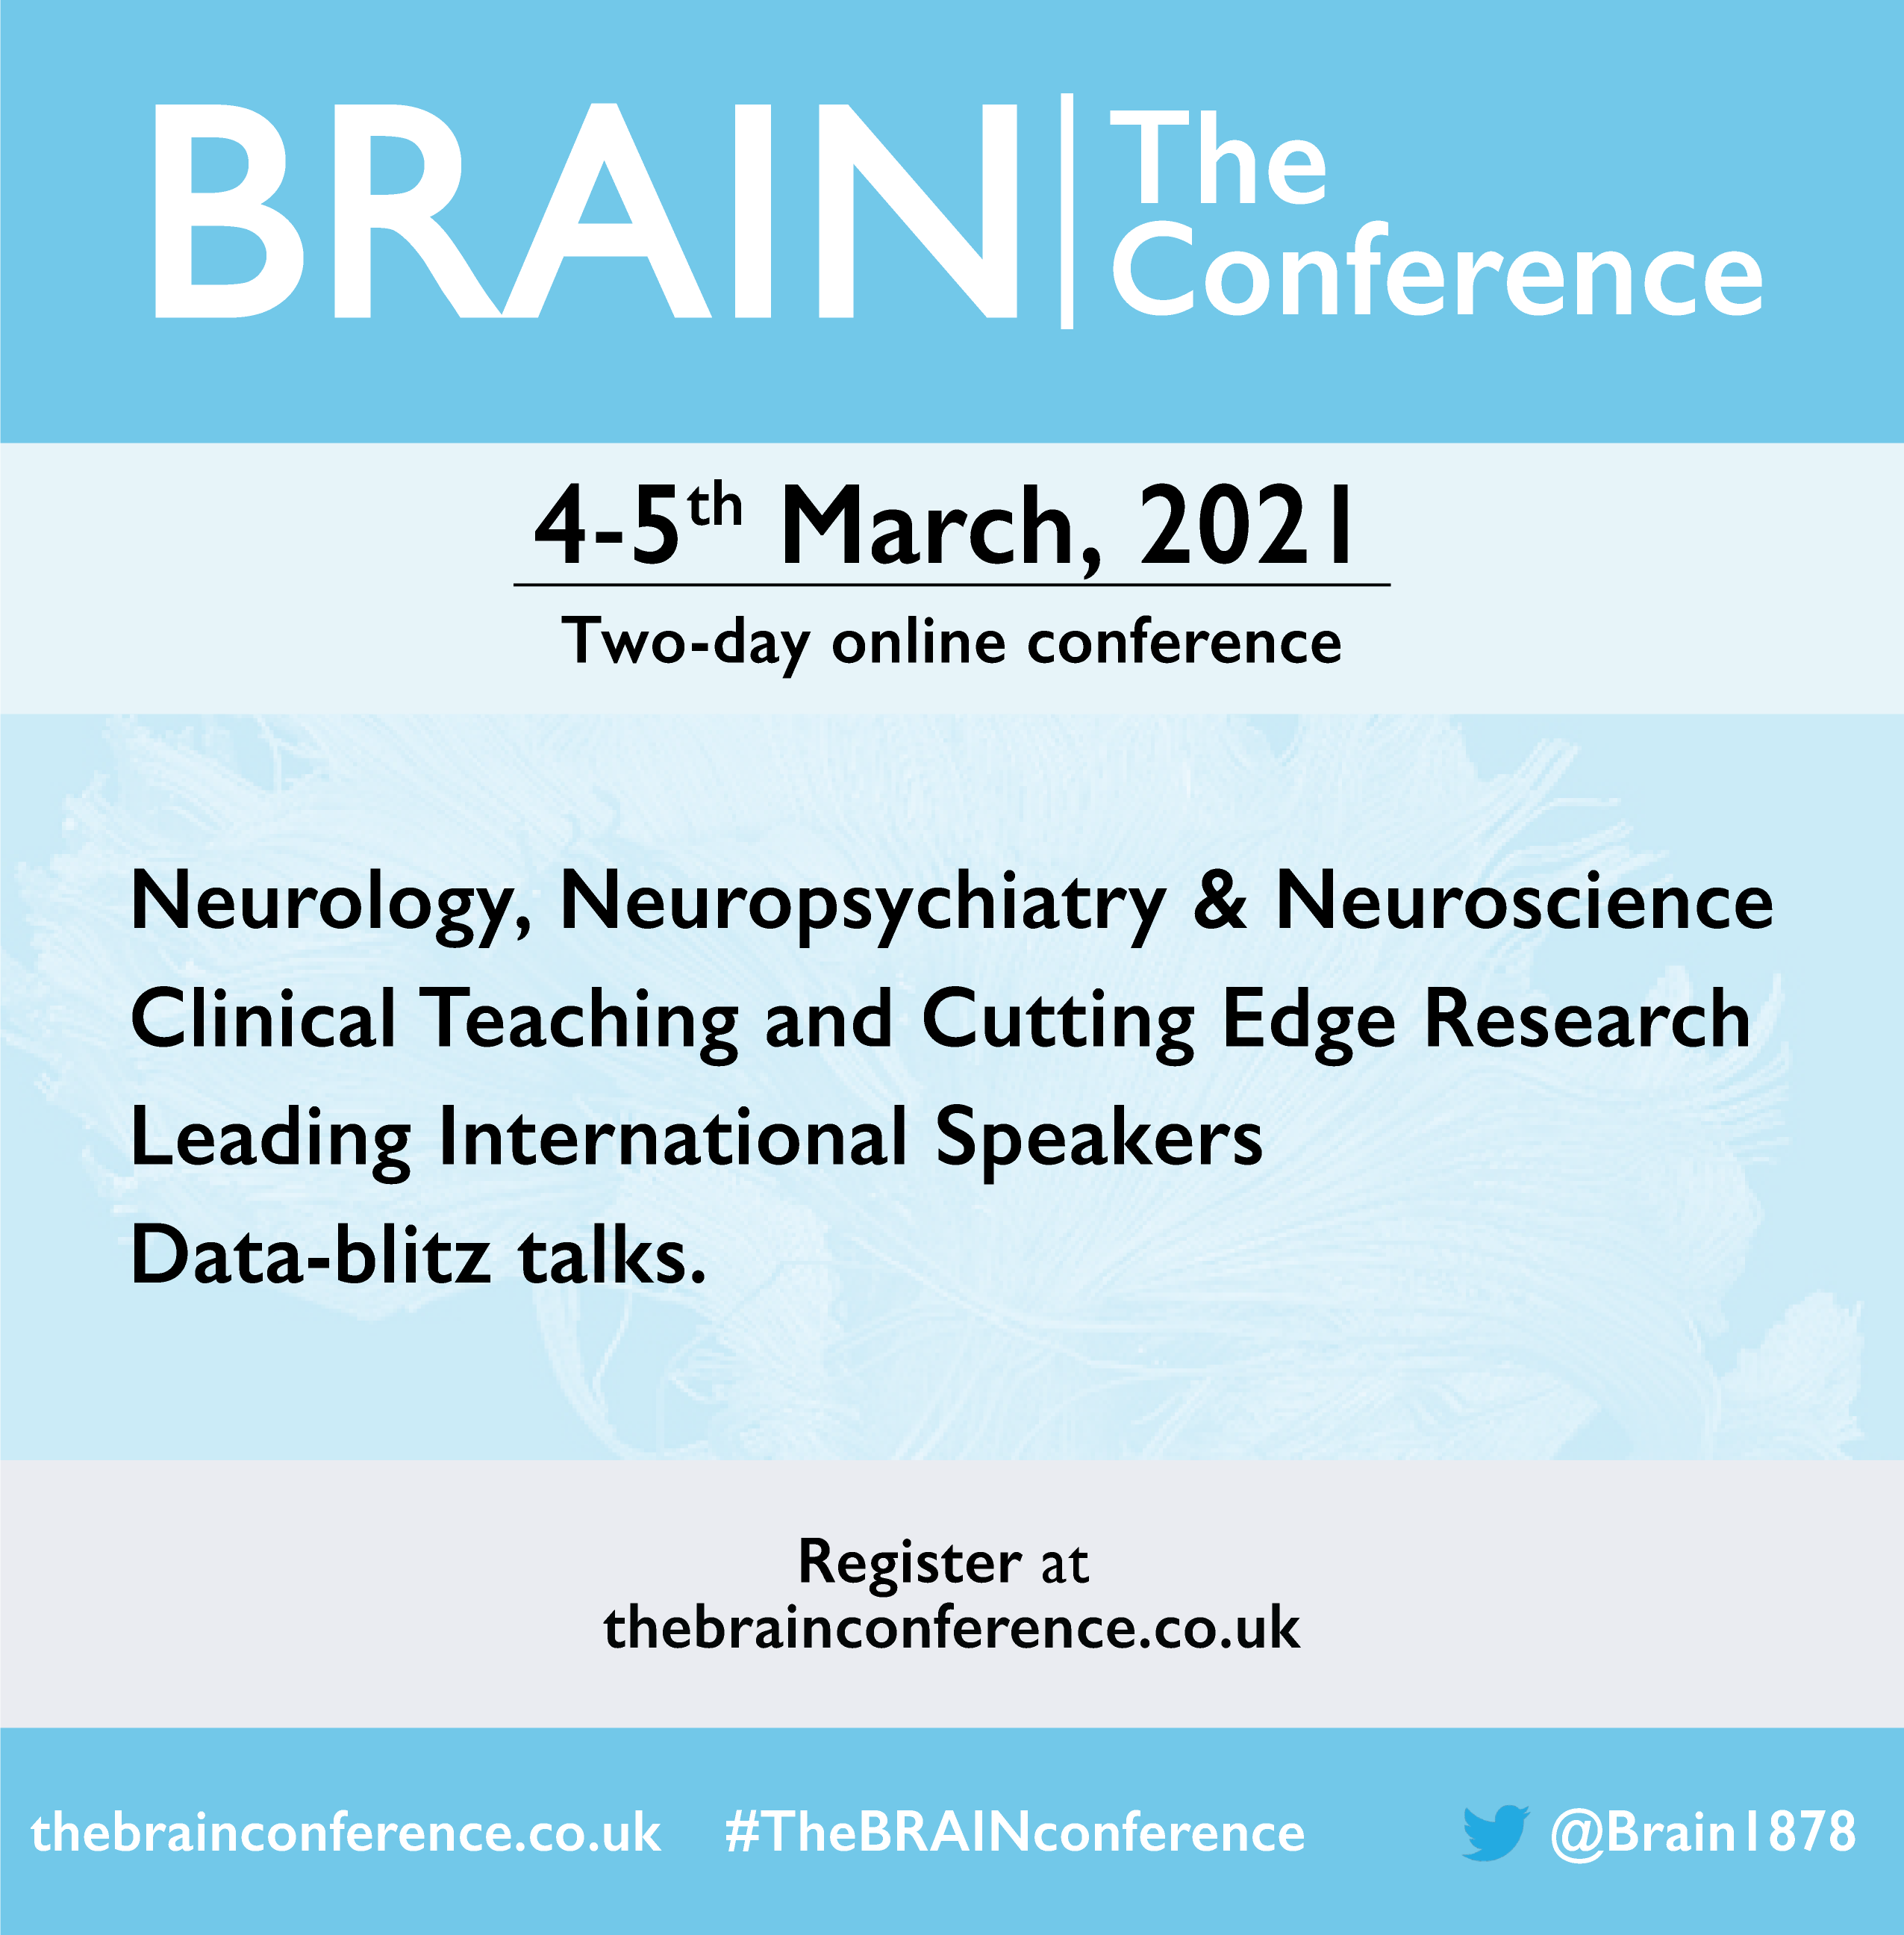 Brain - The Conference